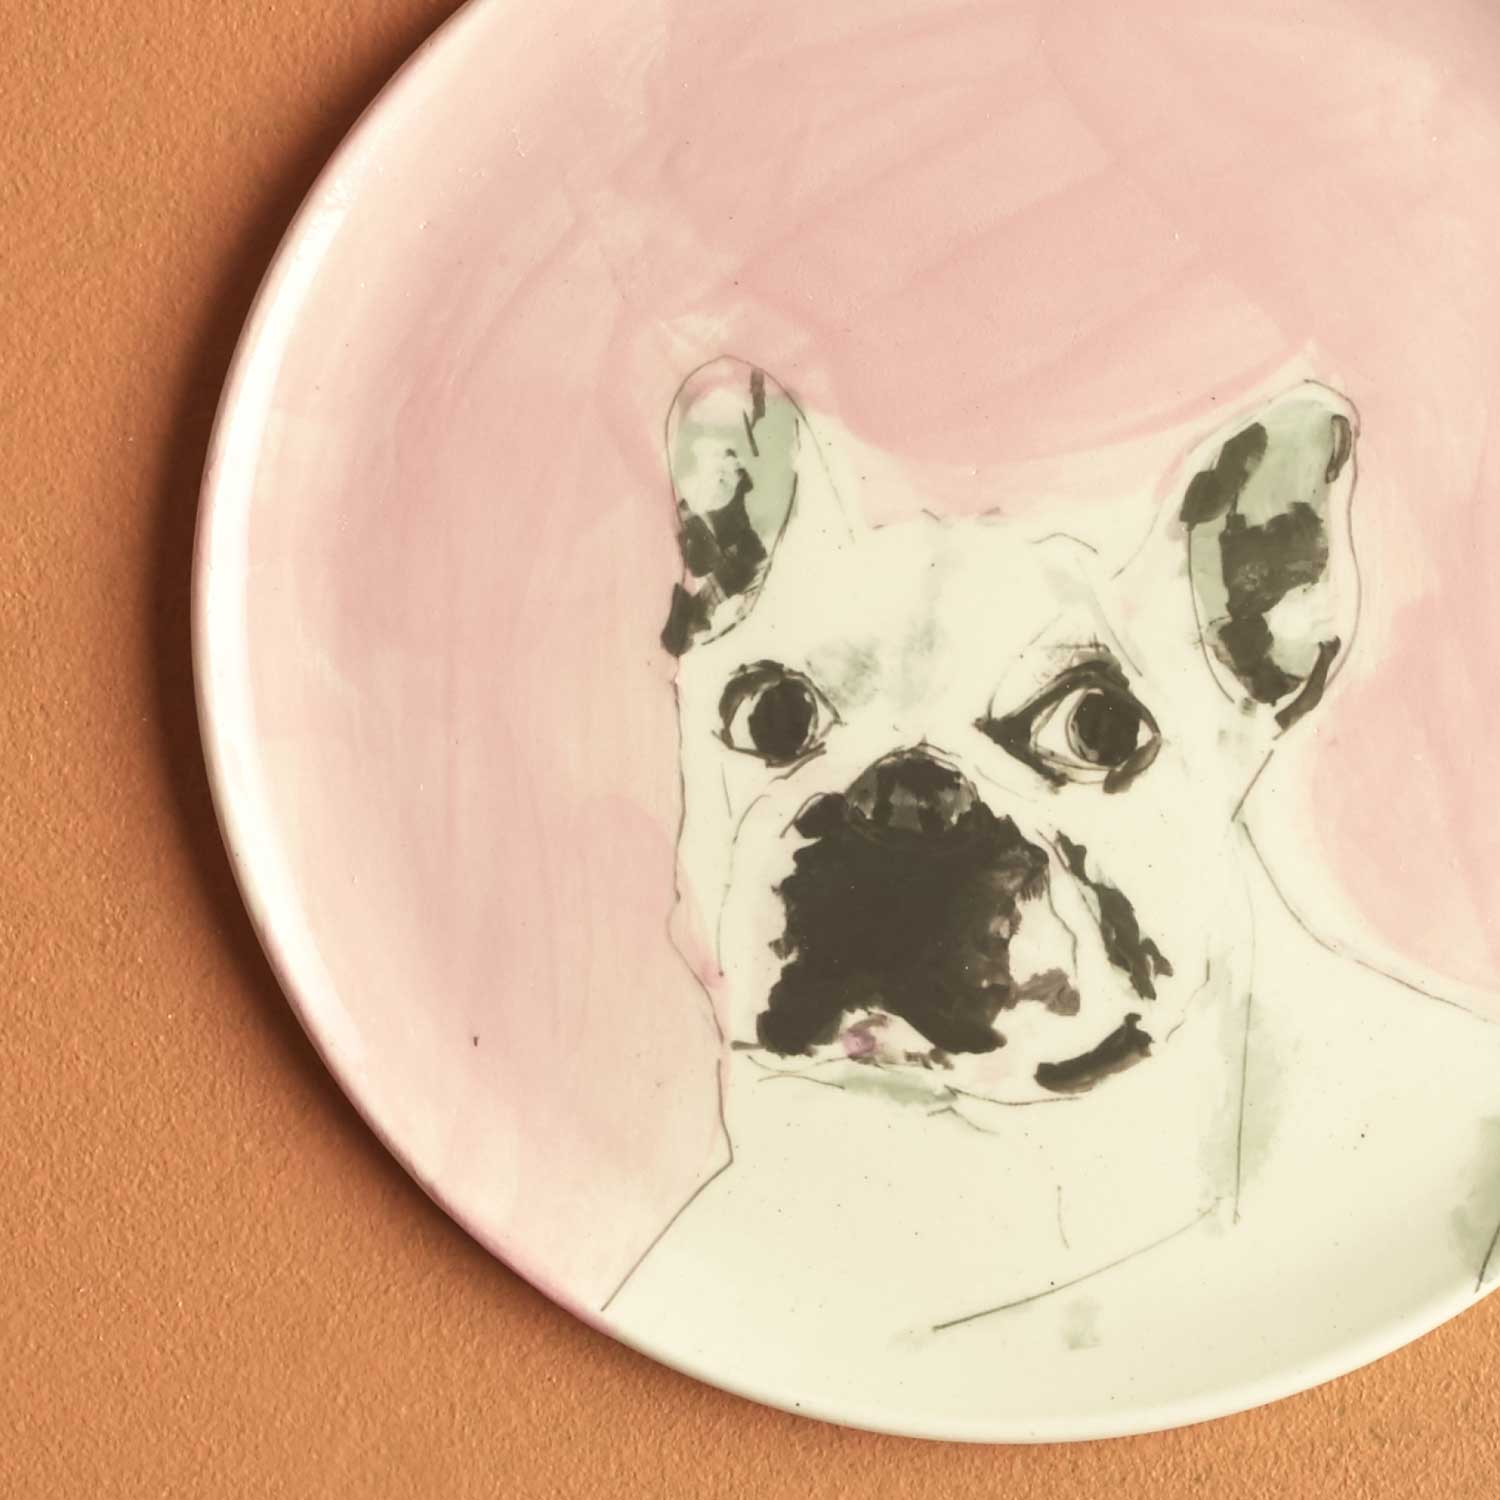 PLATE - FRENCH BULLDOG